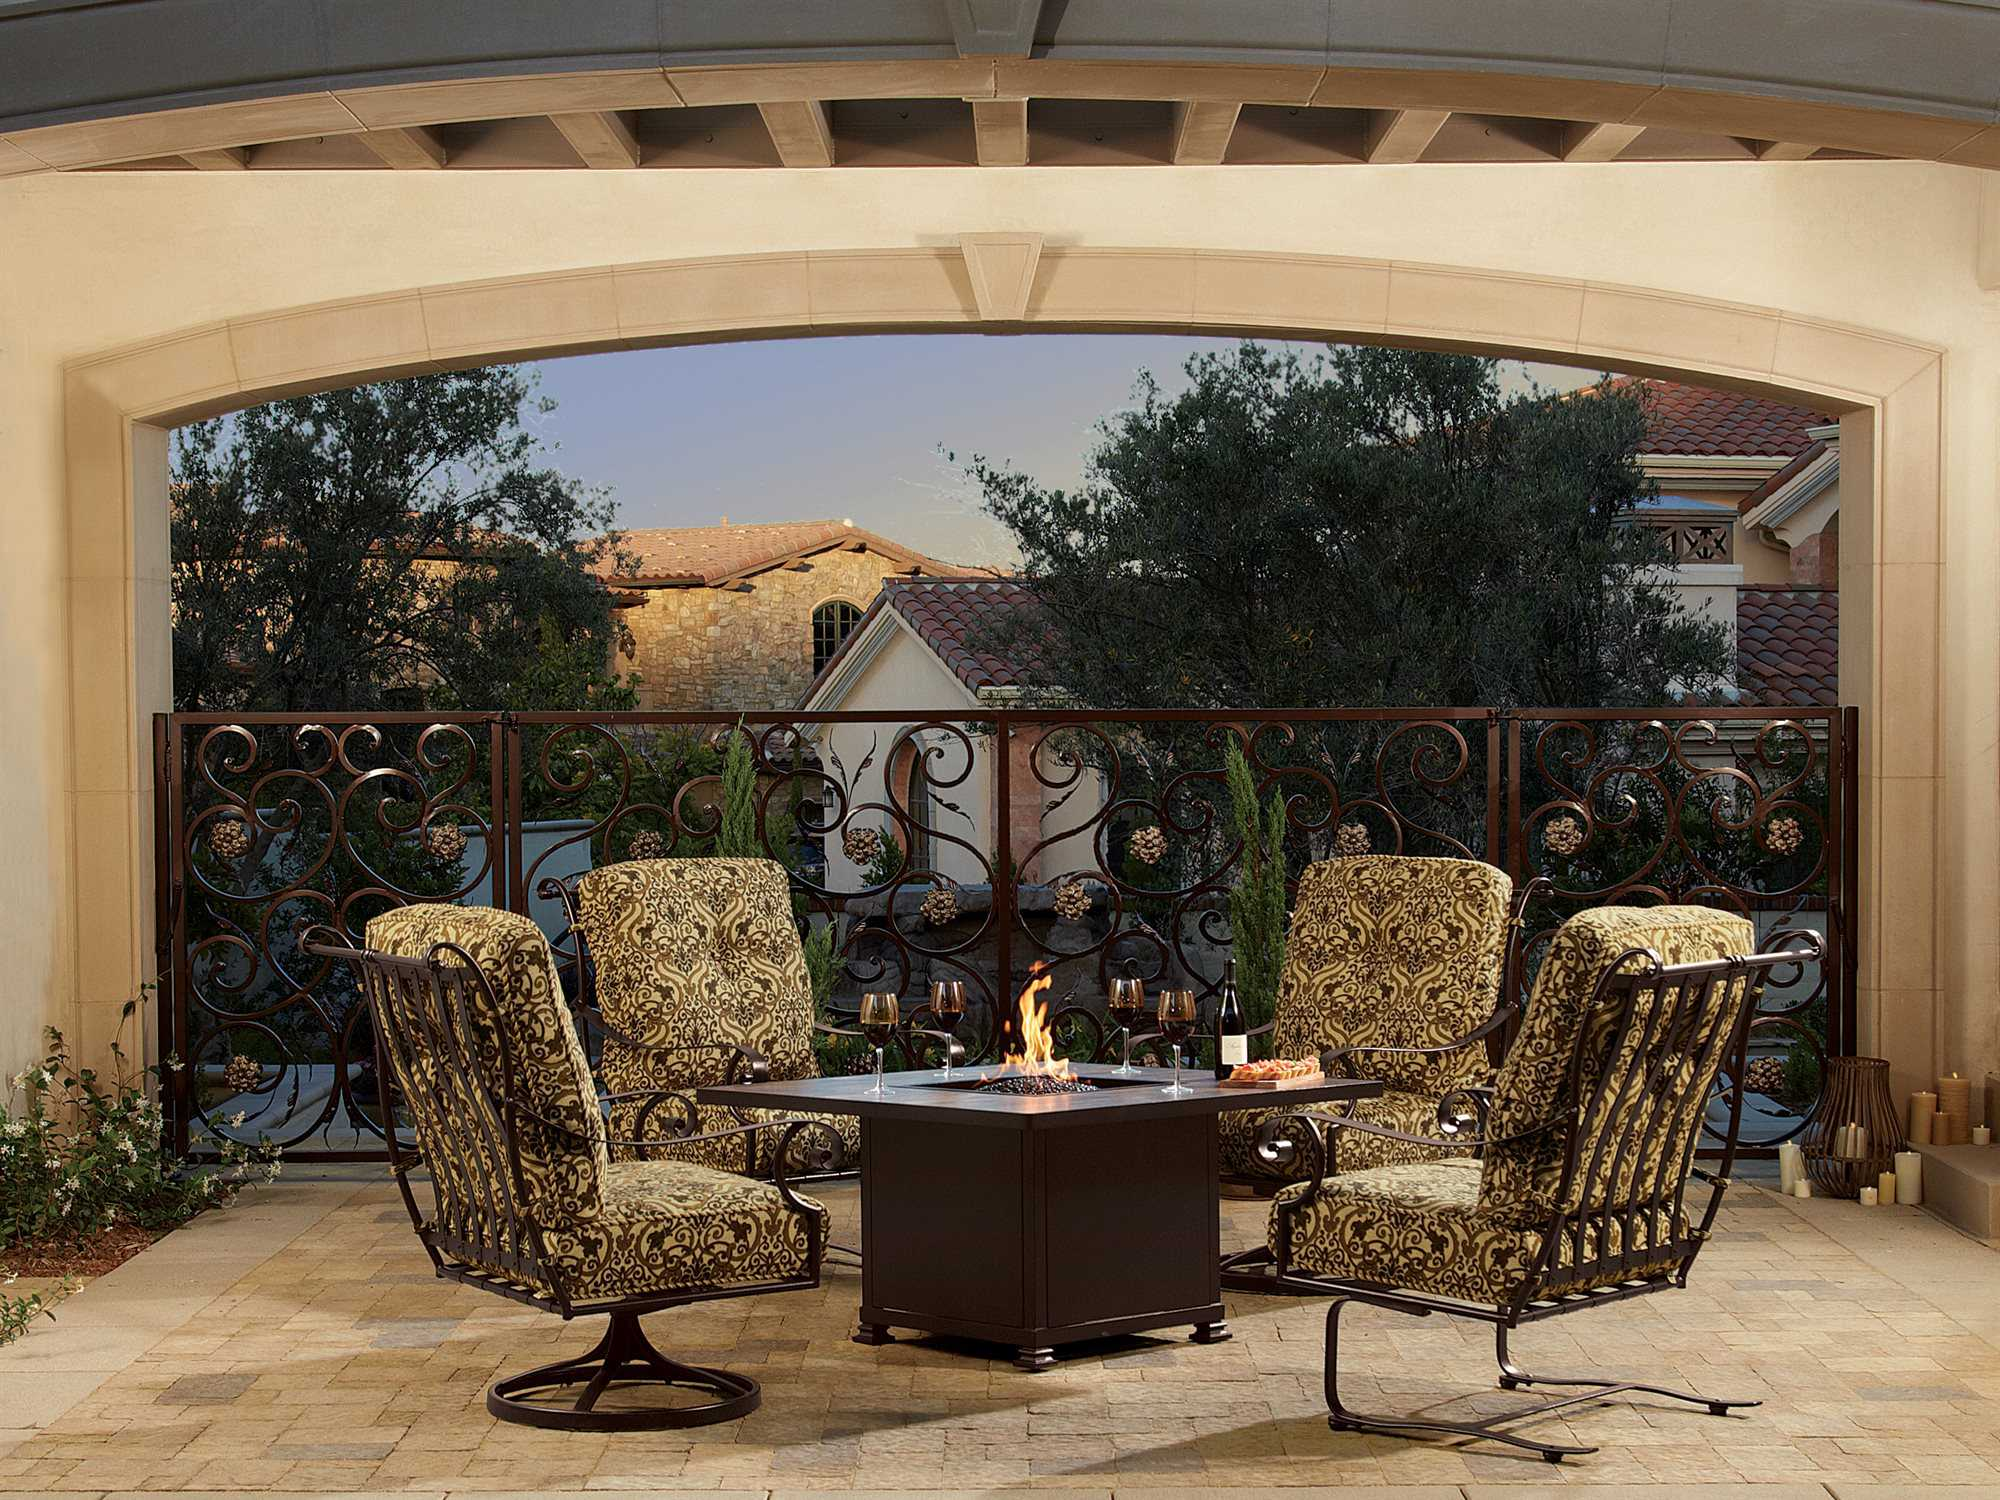 Ow Lee Casual Fireside Santorini Wrought Iron 48 Square